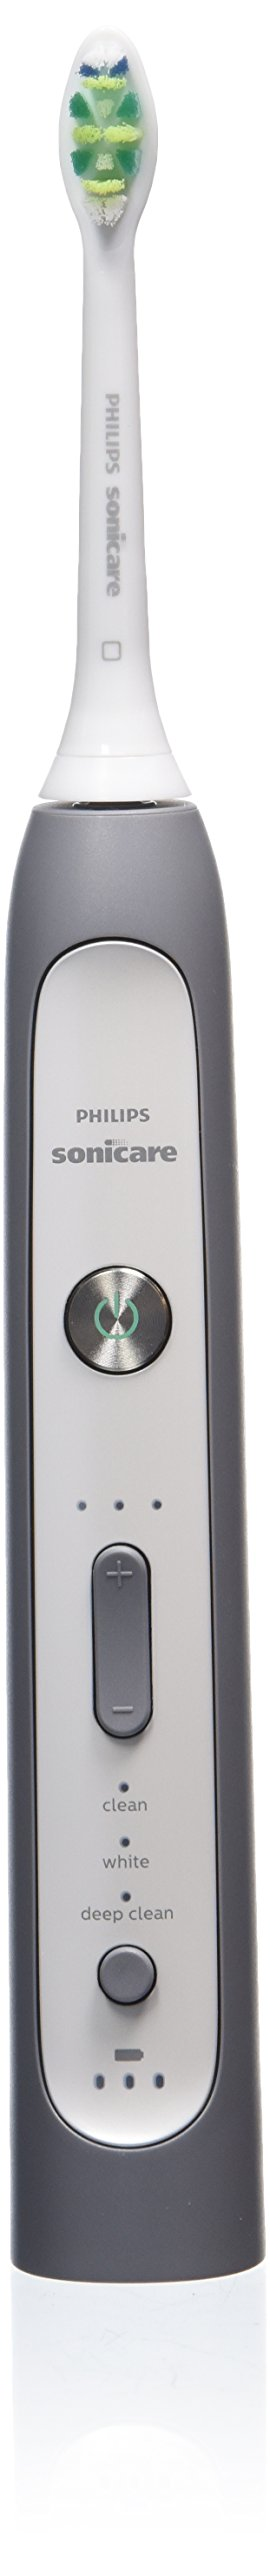 Philips Sonicare FlexCare Platinum rechargeable electric toothbrush, Grey Edition, HX9112